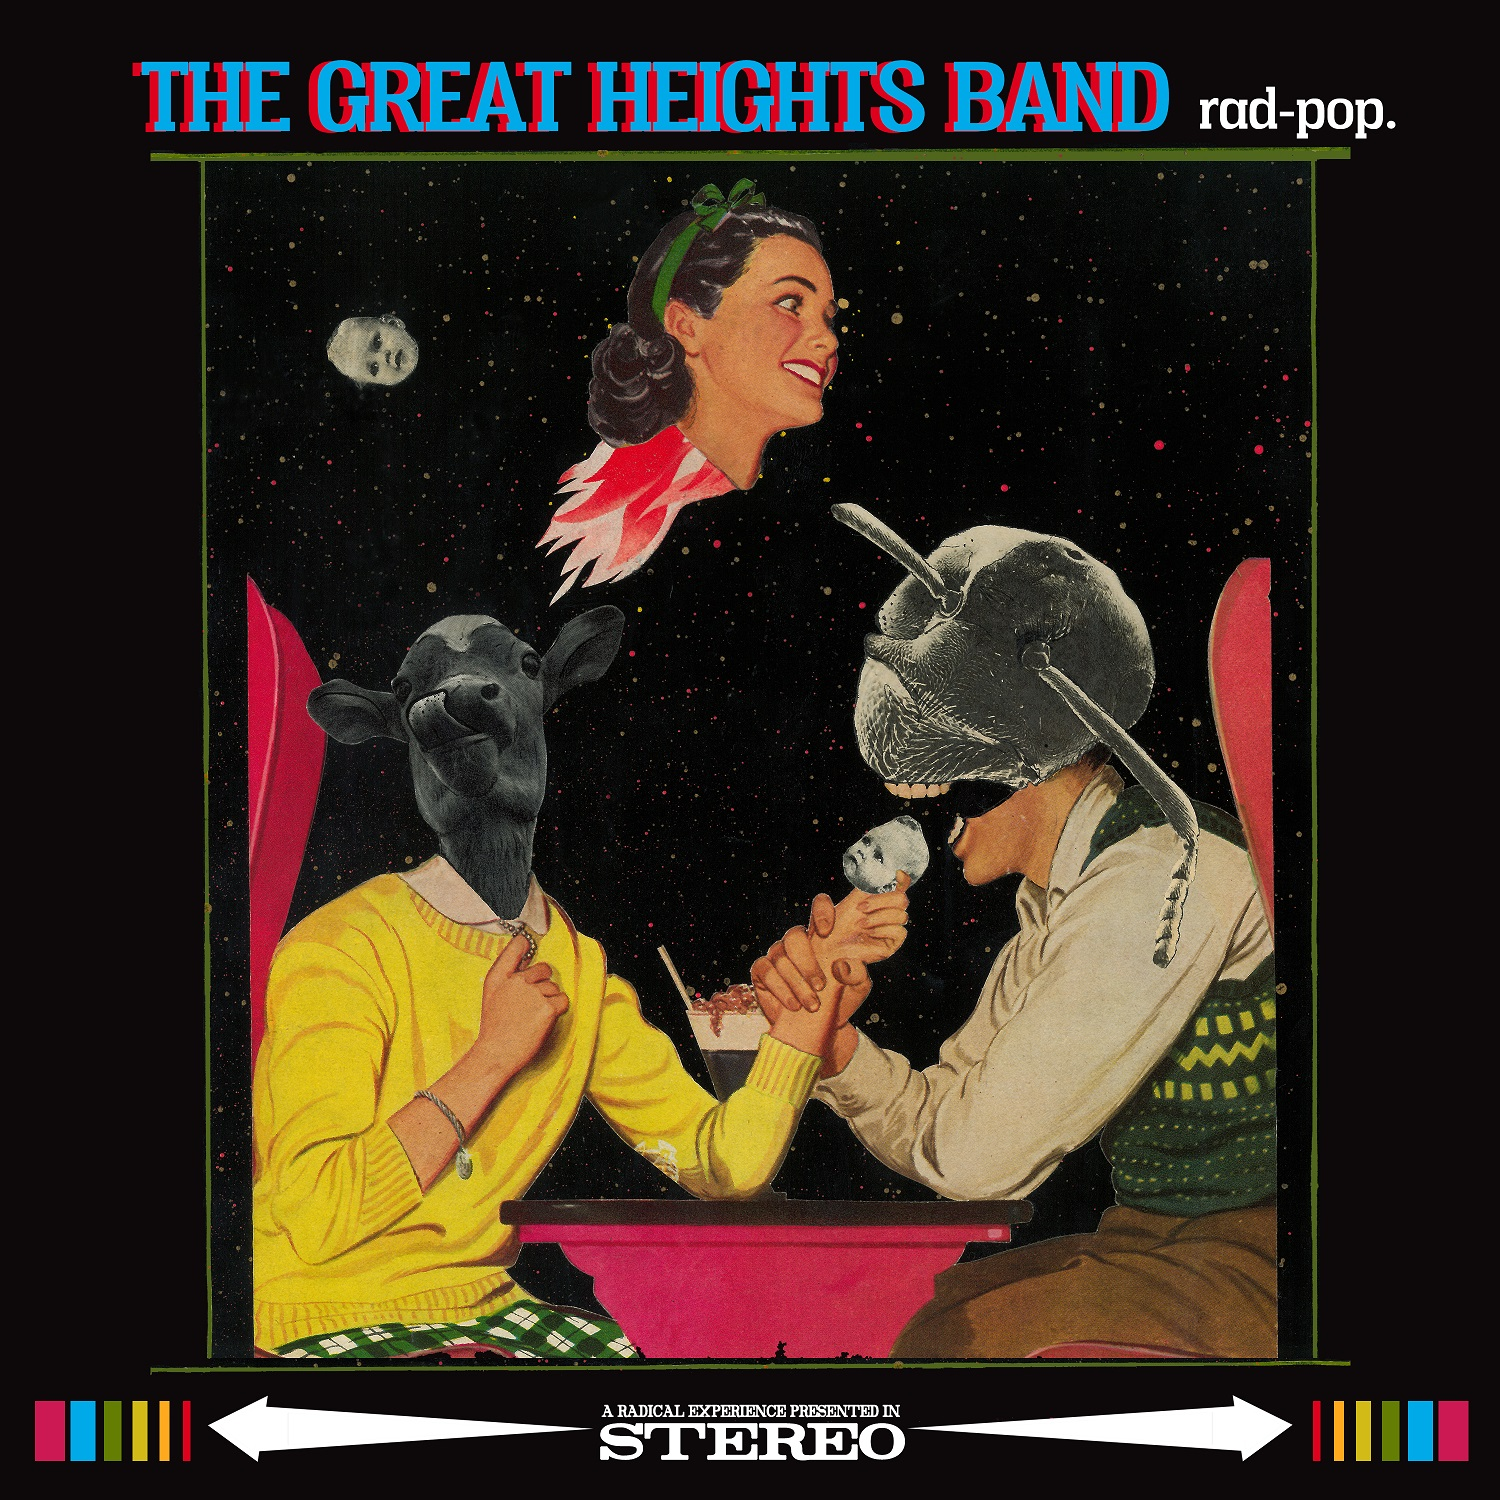 The Great Heights Band - rad-pop. out now!